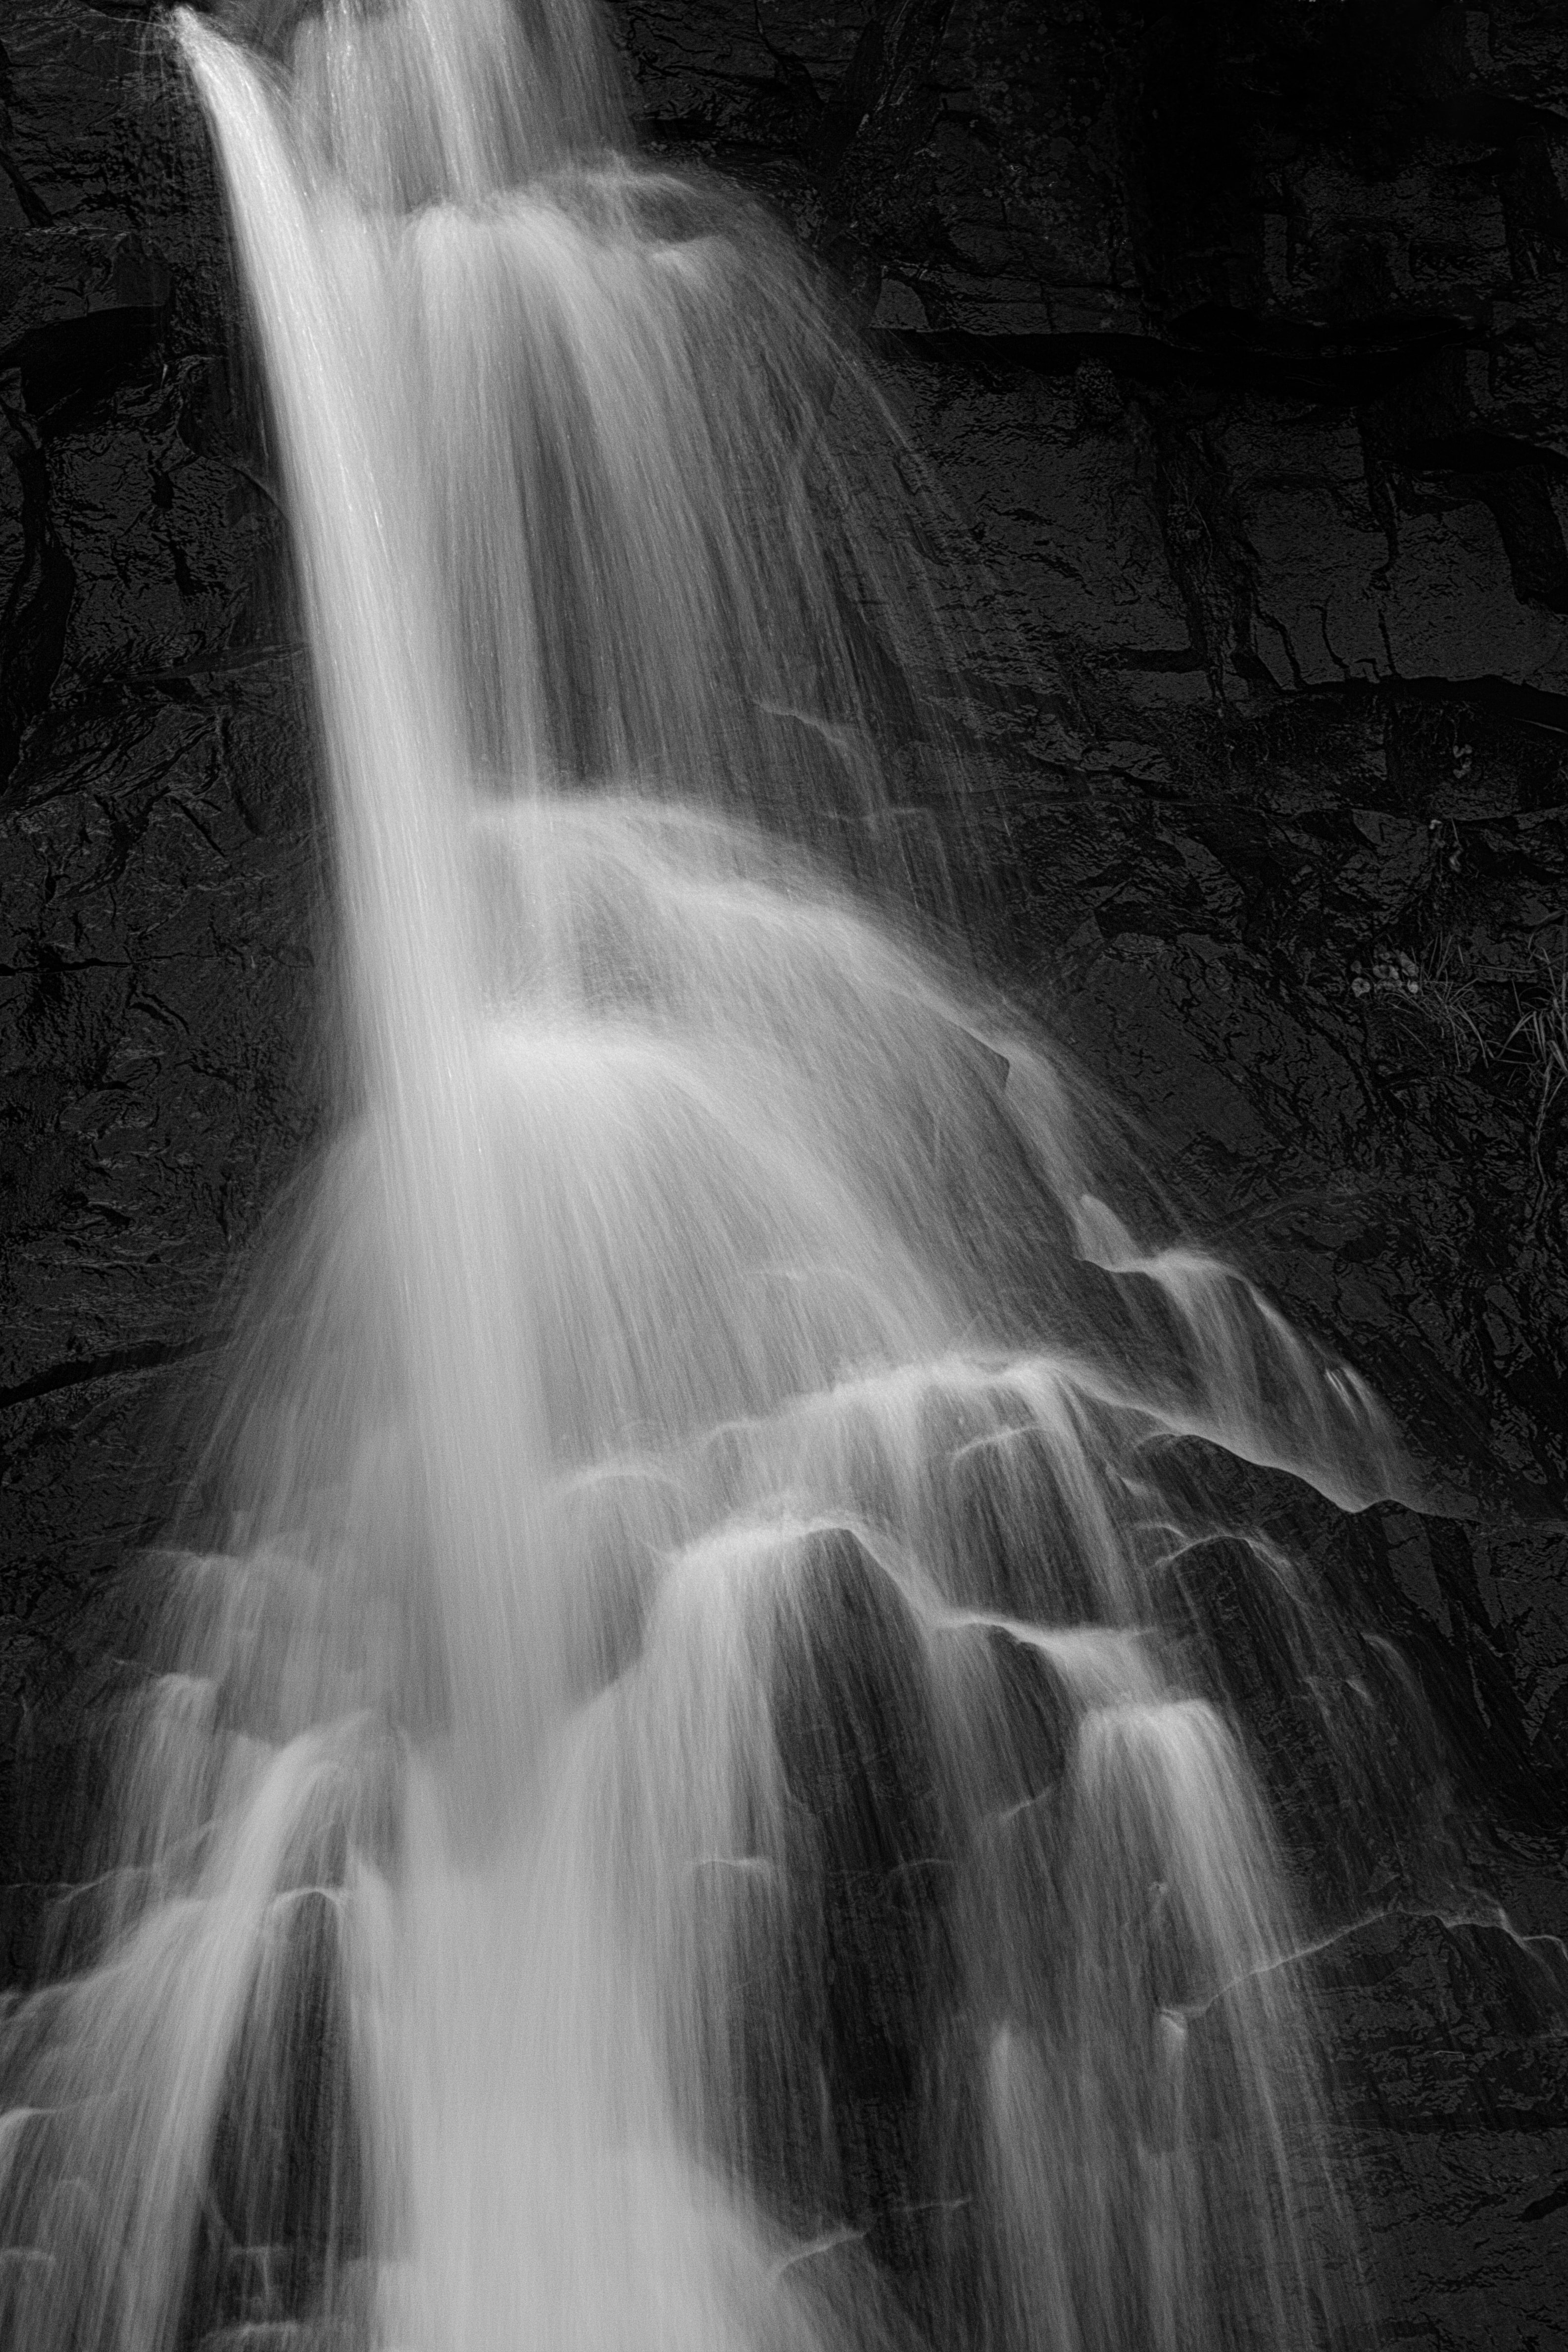 grayscale photo of waterfall